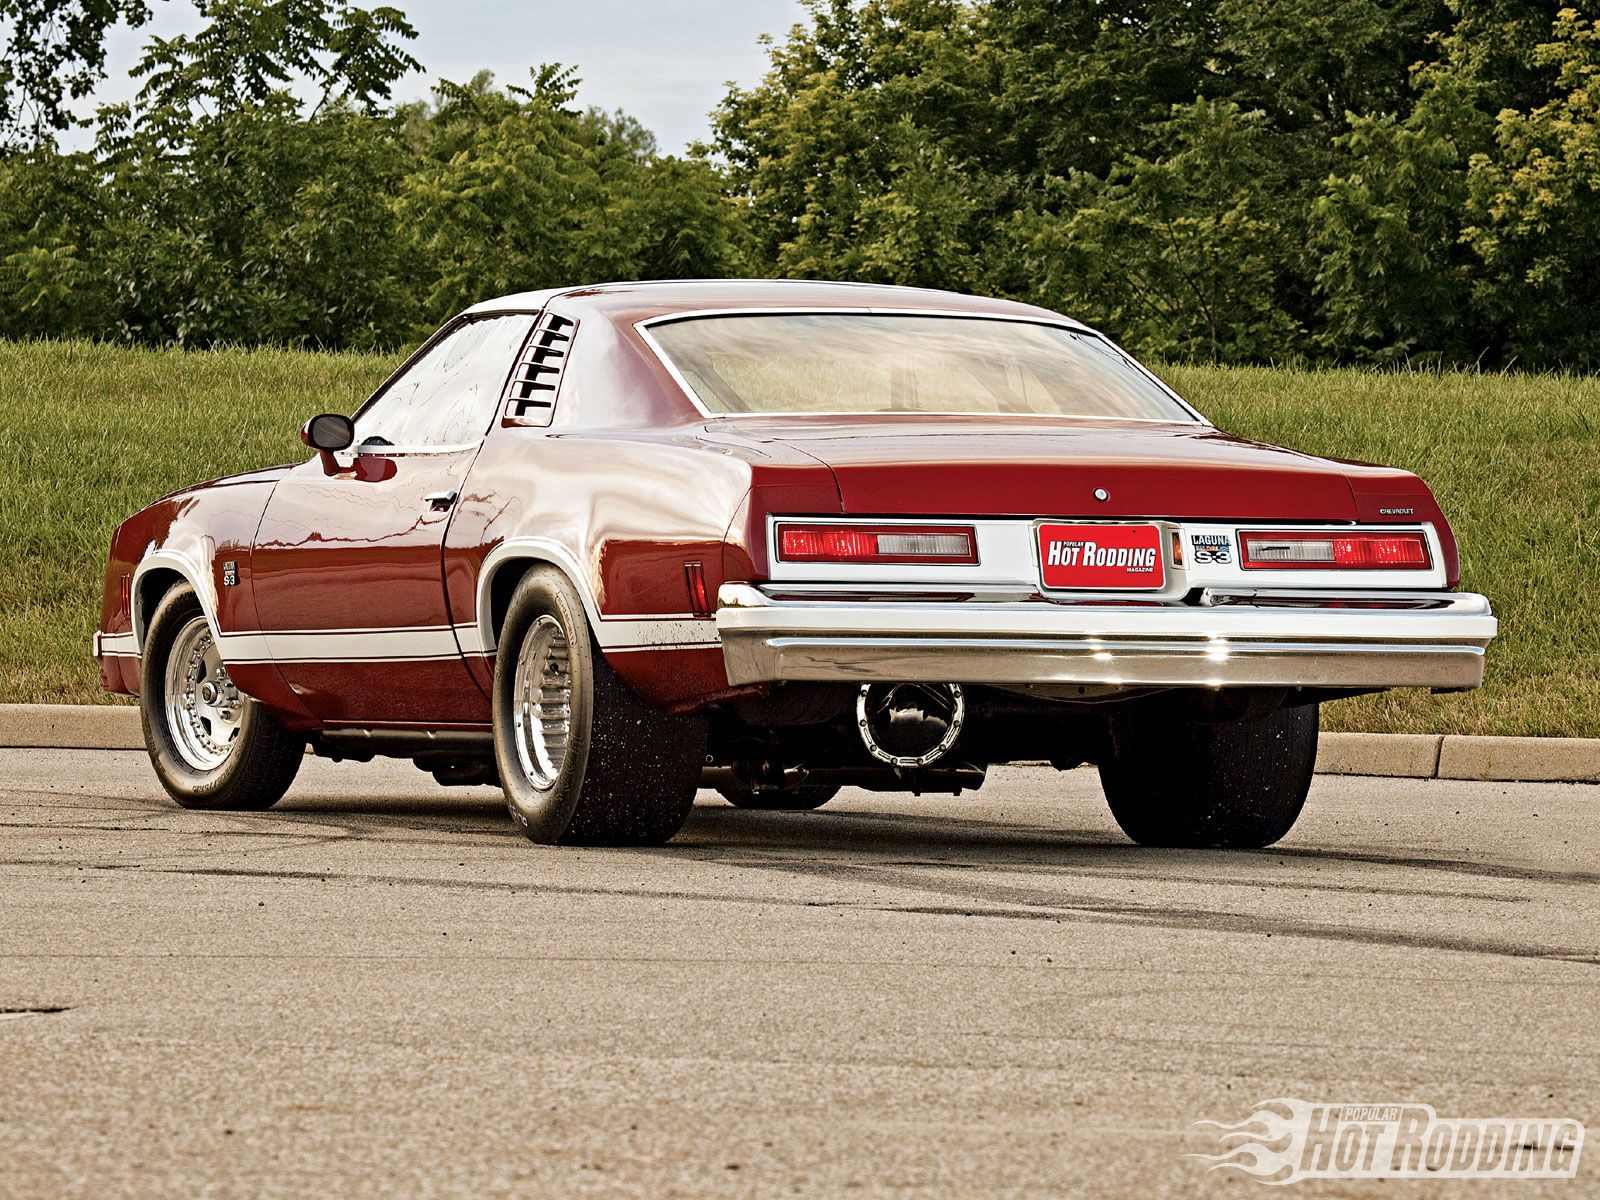 cedcfc7538b410a51ec02f08a3bb303b Take A Look About 1980 Monte Carlo for Sale with Mesmerizing Photos Cars Review